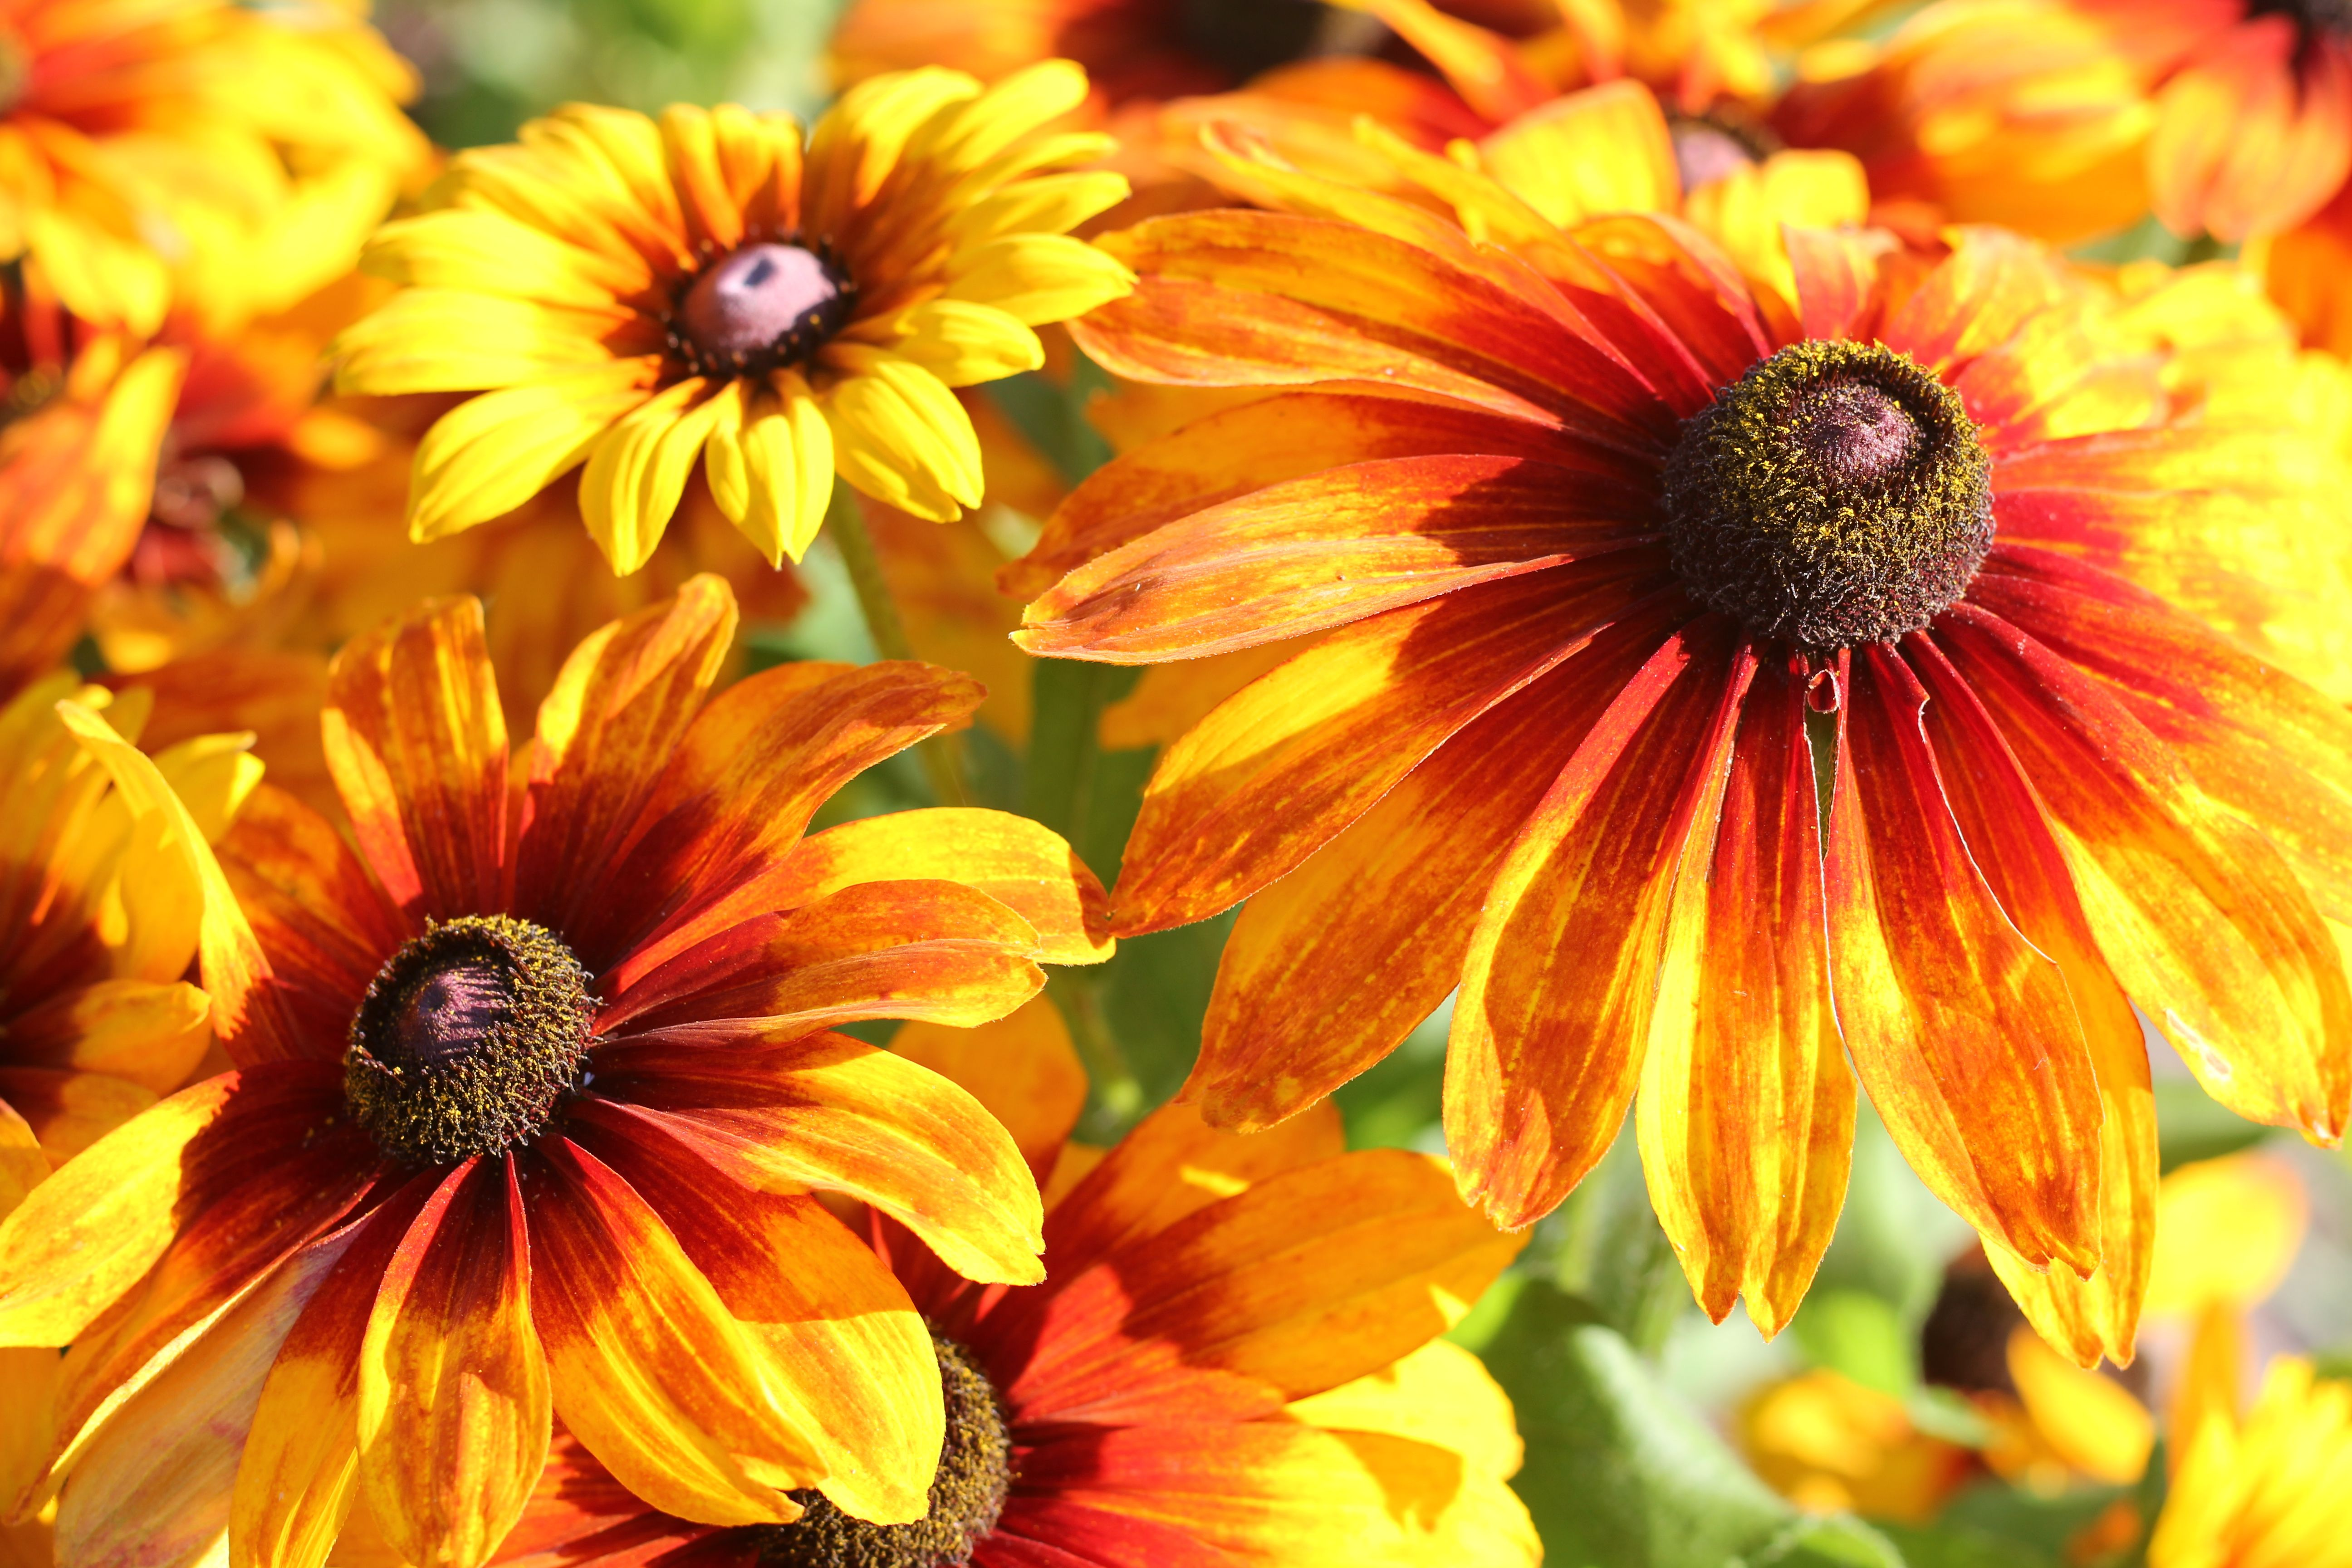 Autumn Colors S Sy Dark Eyed Daisies In Shades Of Bronze